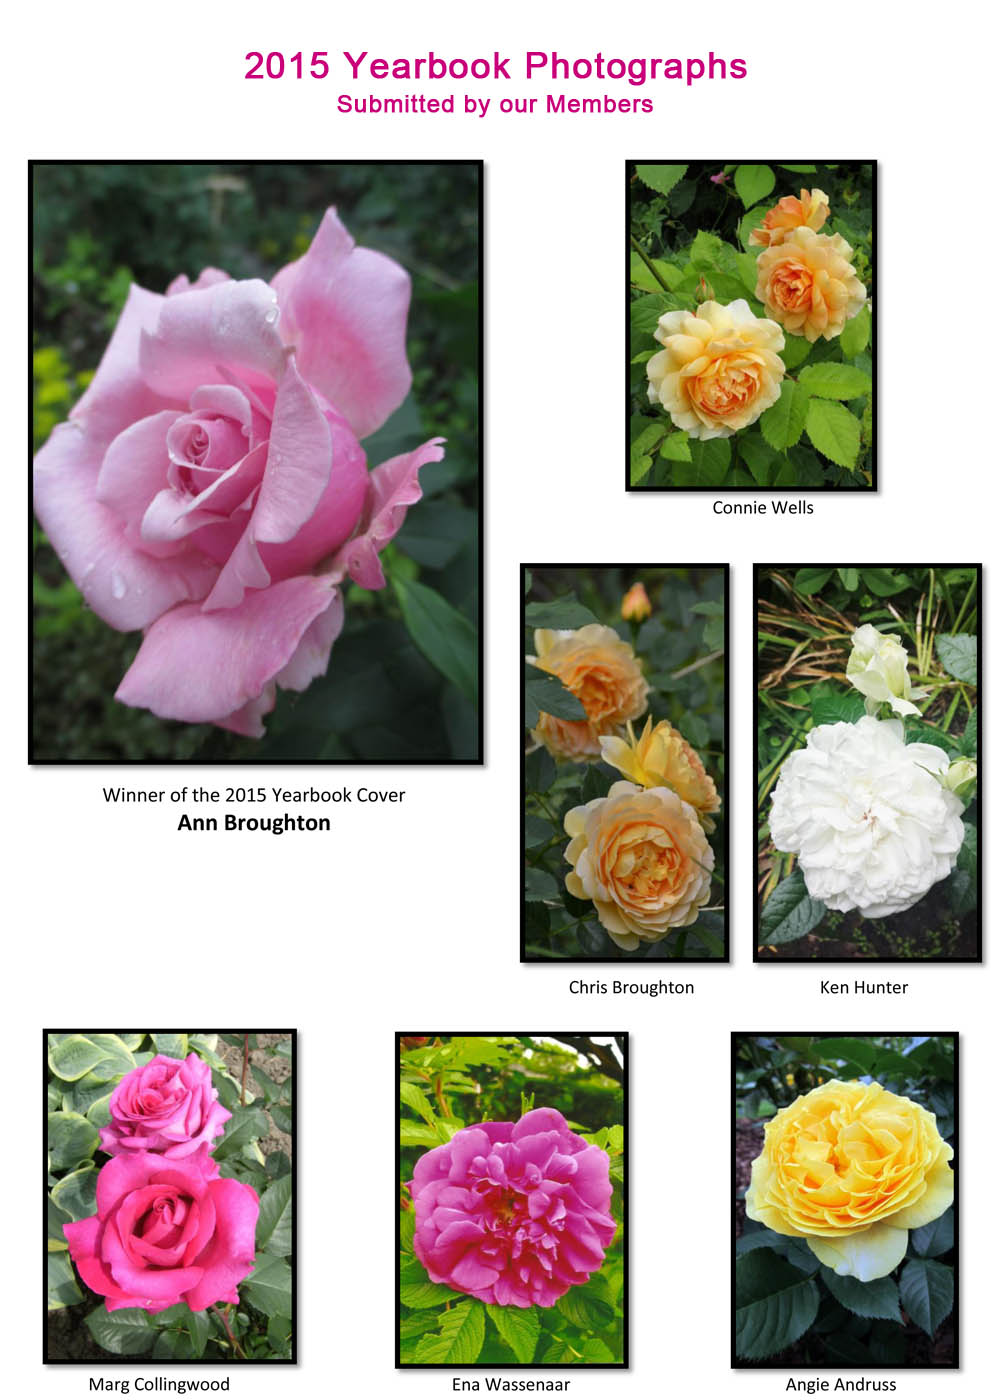 Uxbridge Horticultural Society - 2015 Yearbook Photographs submitted by our members